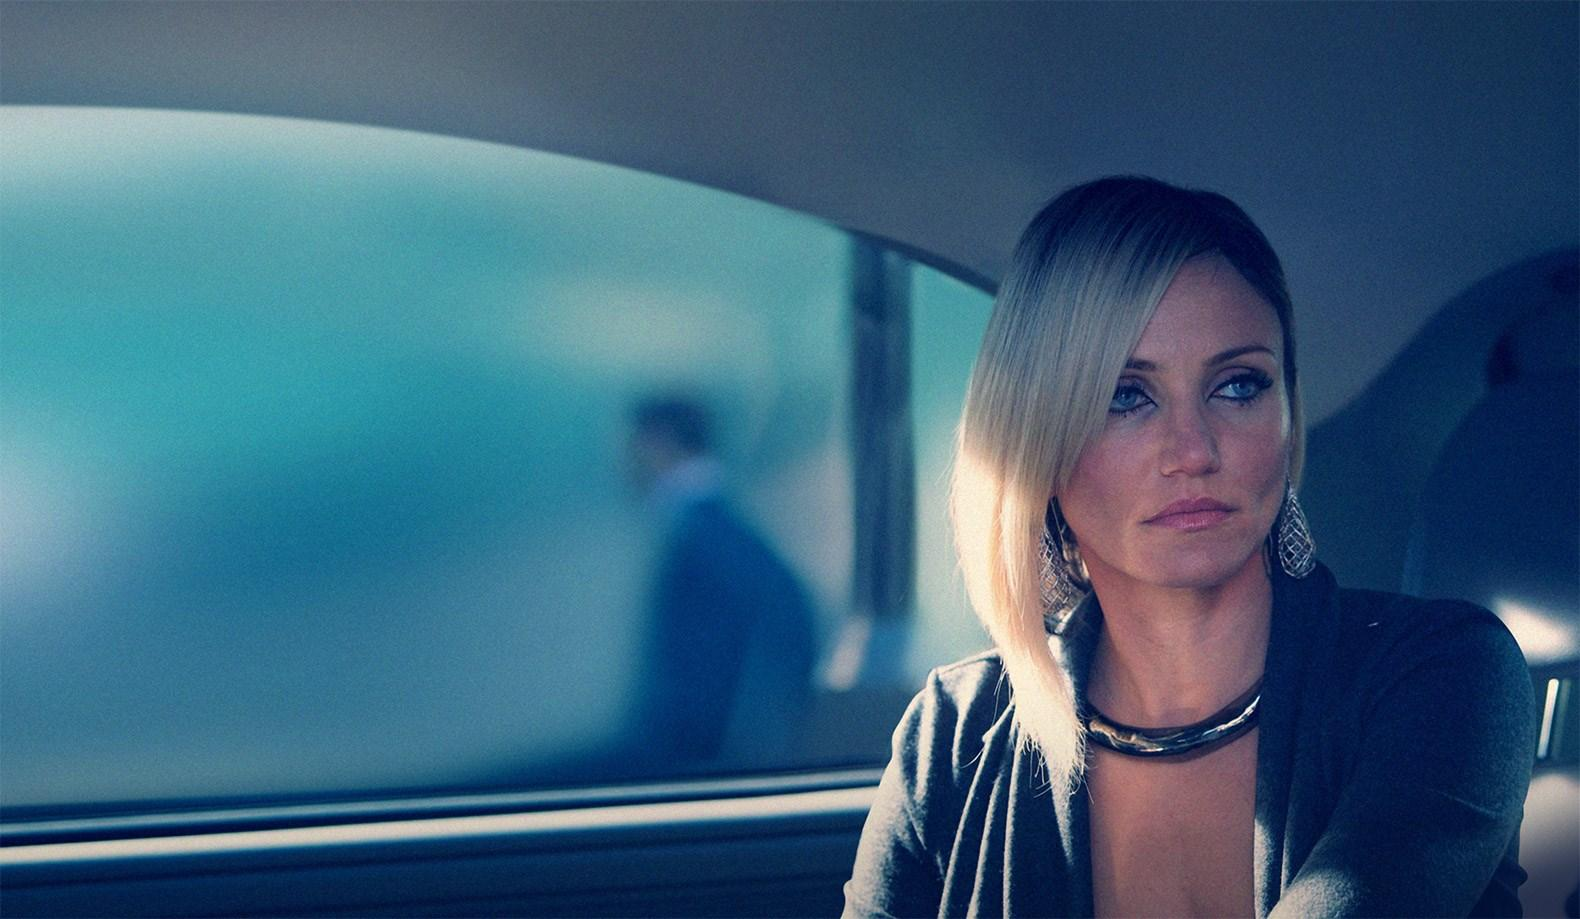 Cameron Diaz in The Counselor (2013)